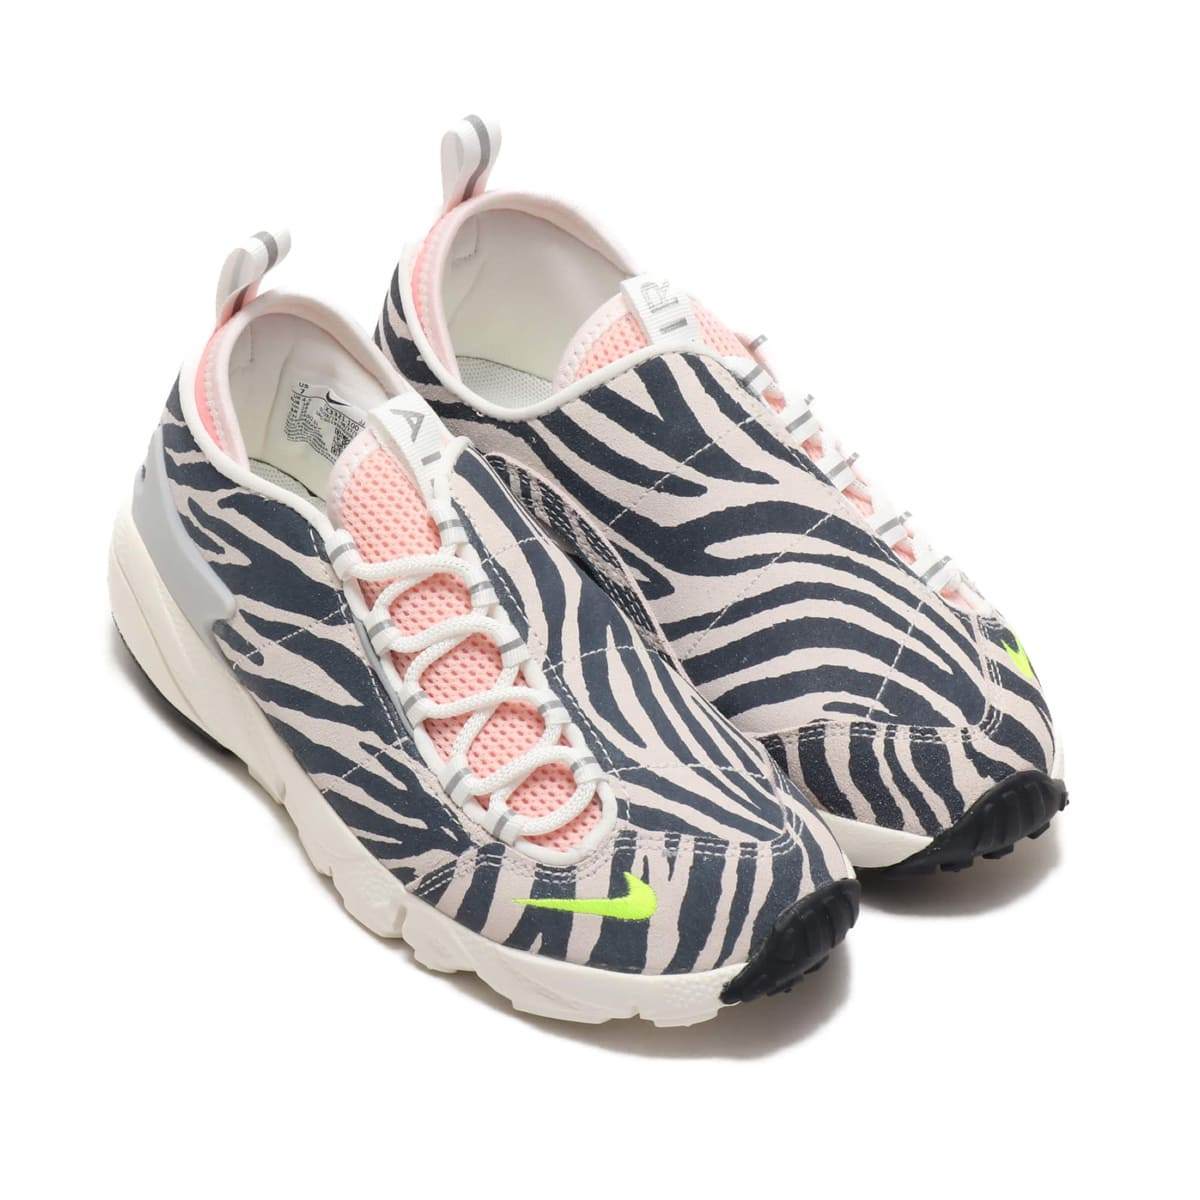 NIKE W AIR FOOTSCAPE NXN SUMMIT WHITE/VOLT-BLEACHED CORAL-BLACK 19HO-S_photo_large